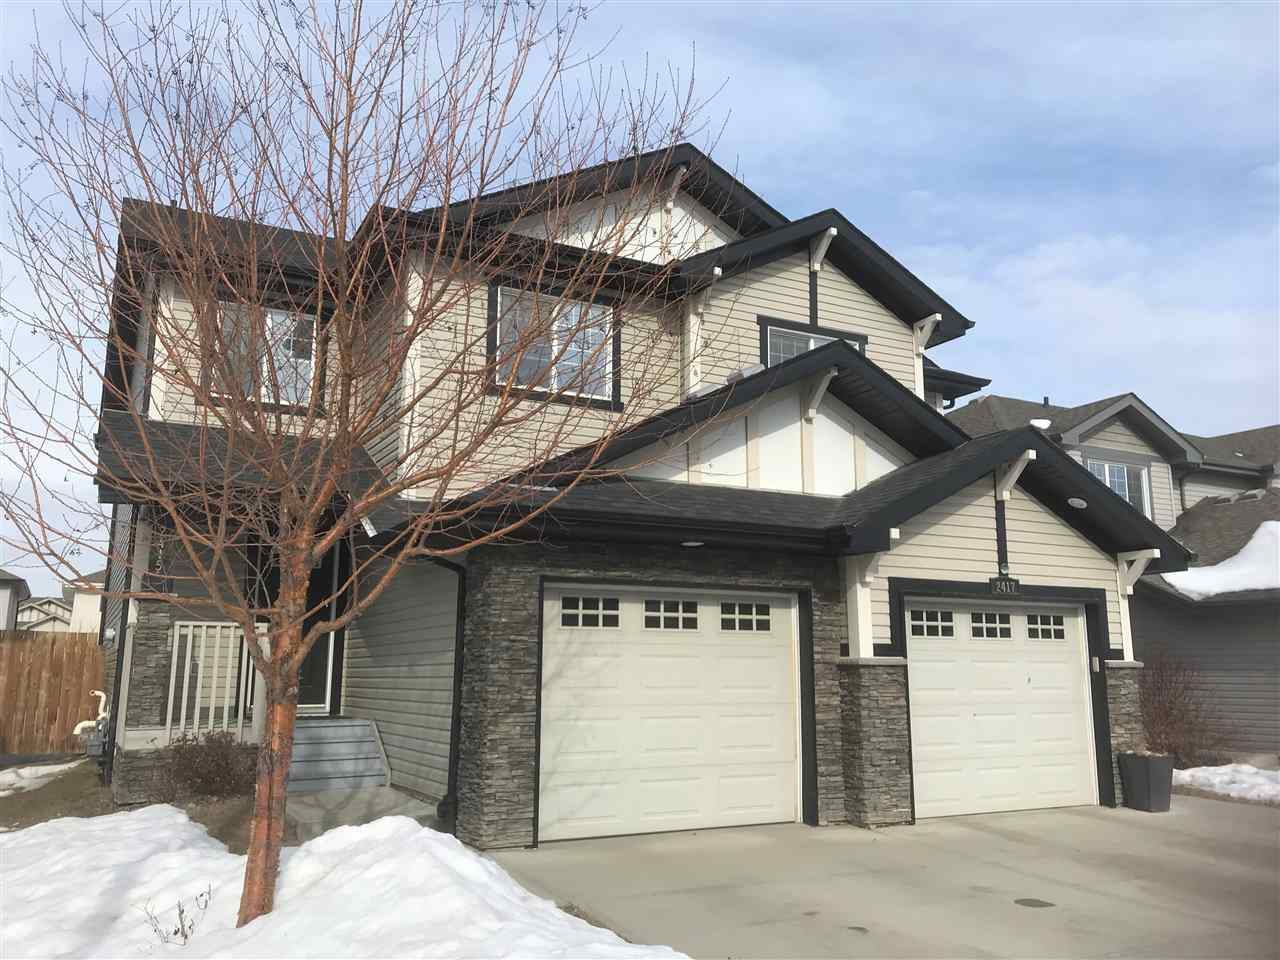 Well maintained & freshly painted.  Features:  3 bedroom and 2.5 bathroom half-duplex;  HUGE rear deck;  Intelligent floor plan with corner GAS fireplace;  Basement partially finished (most of the hard work has been done!).  Move in and Enjoy! Home is here & what you make it!!